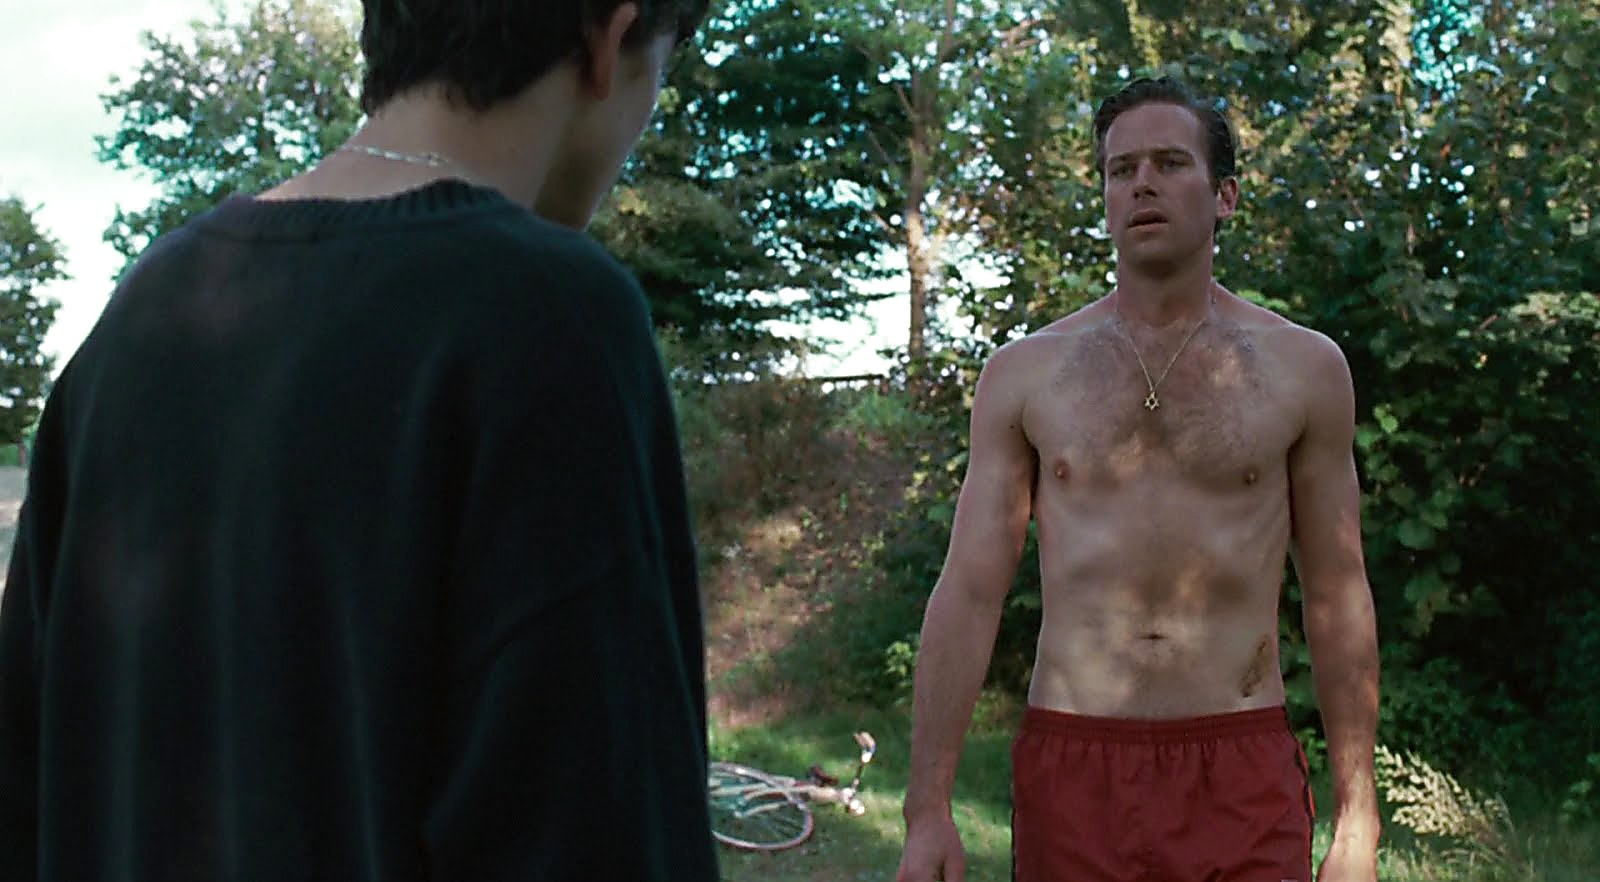 Armie Hammer sexy shirtless scene February 17, 2018, 1pm